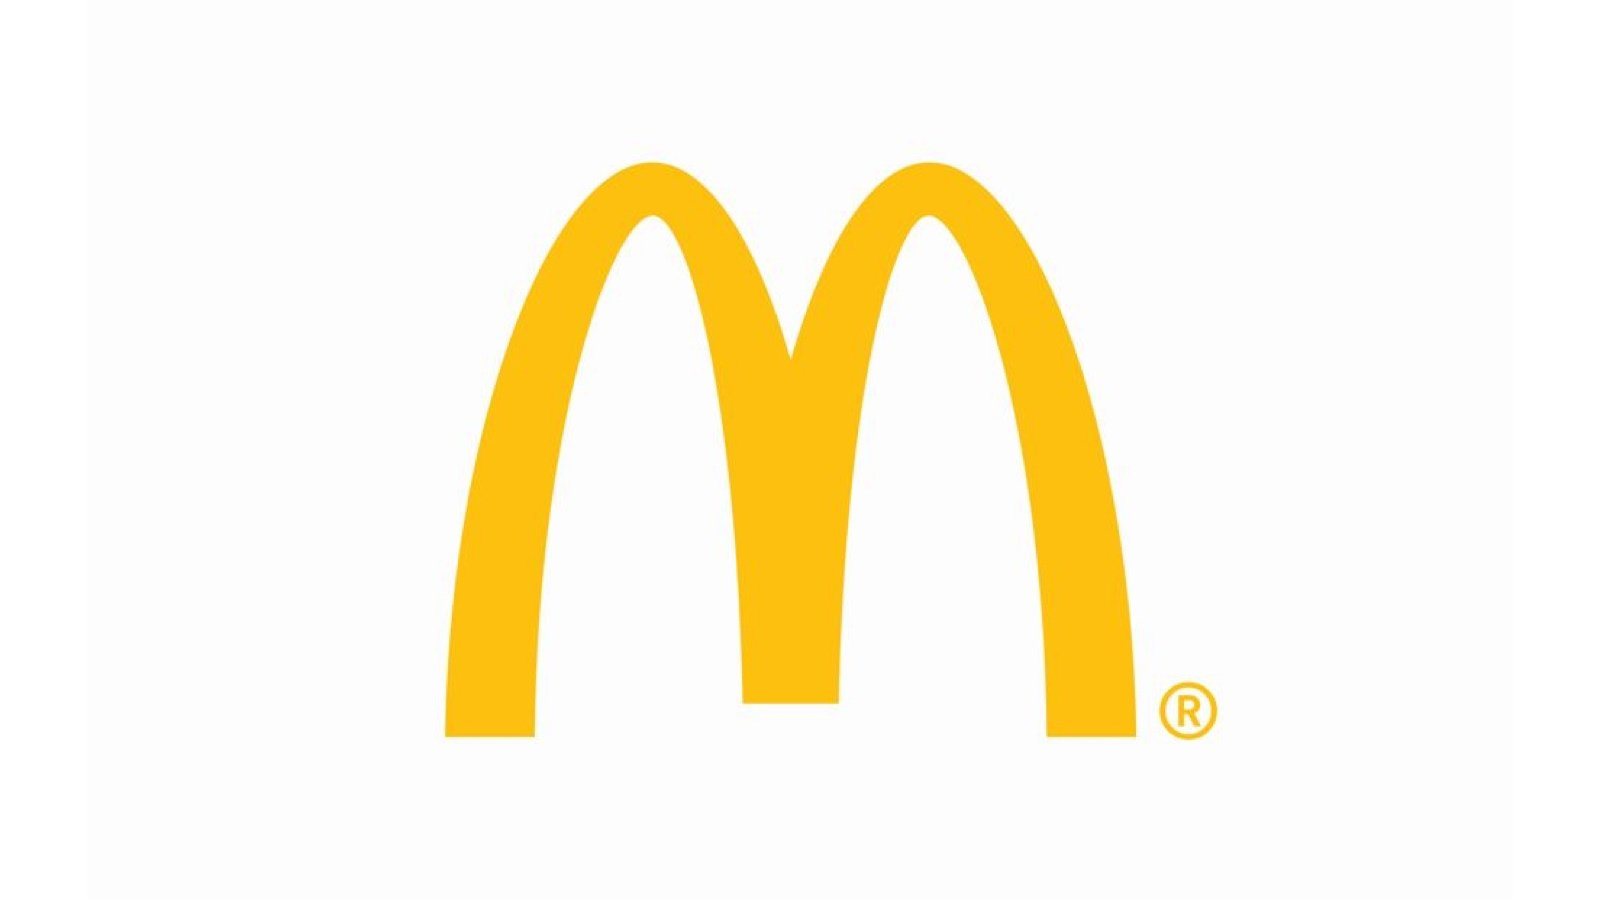 Yellow McDonalds logo